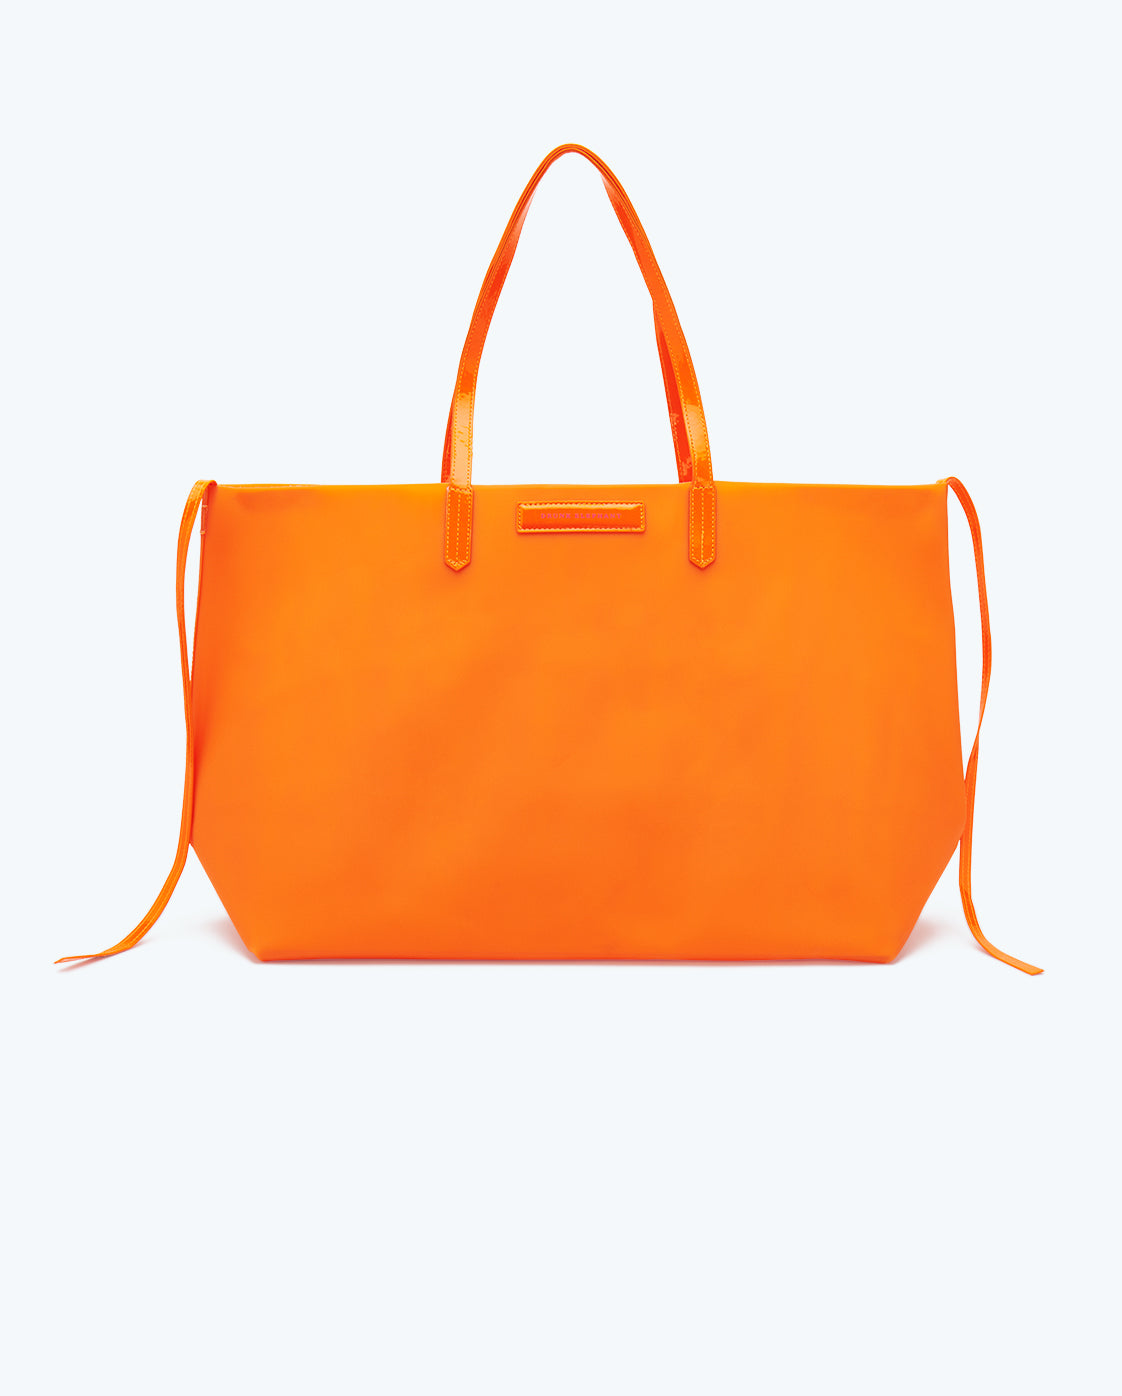 The Drunk Life Orange Totebag